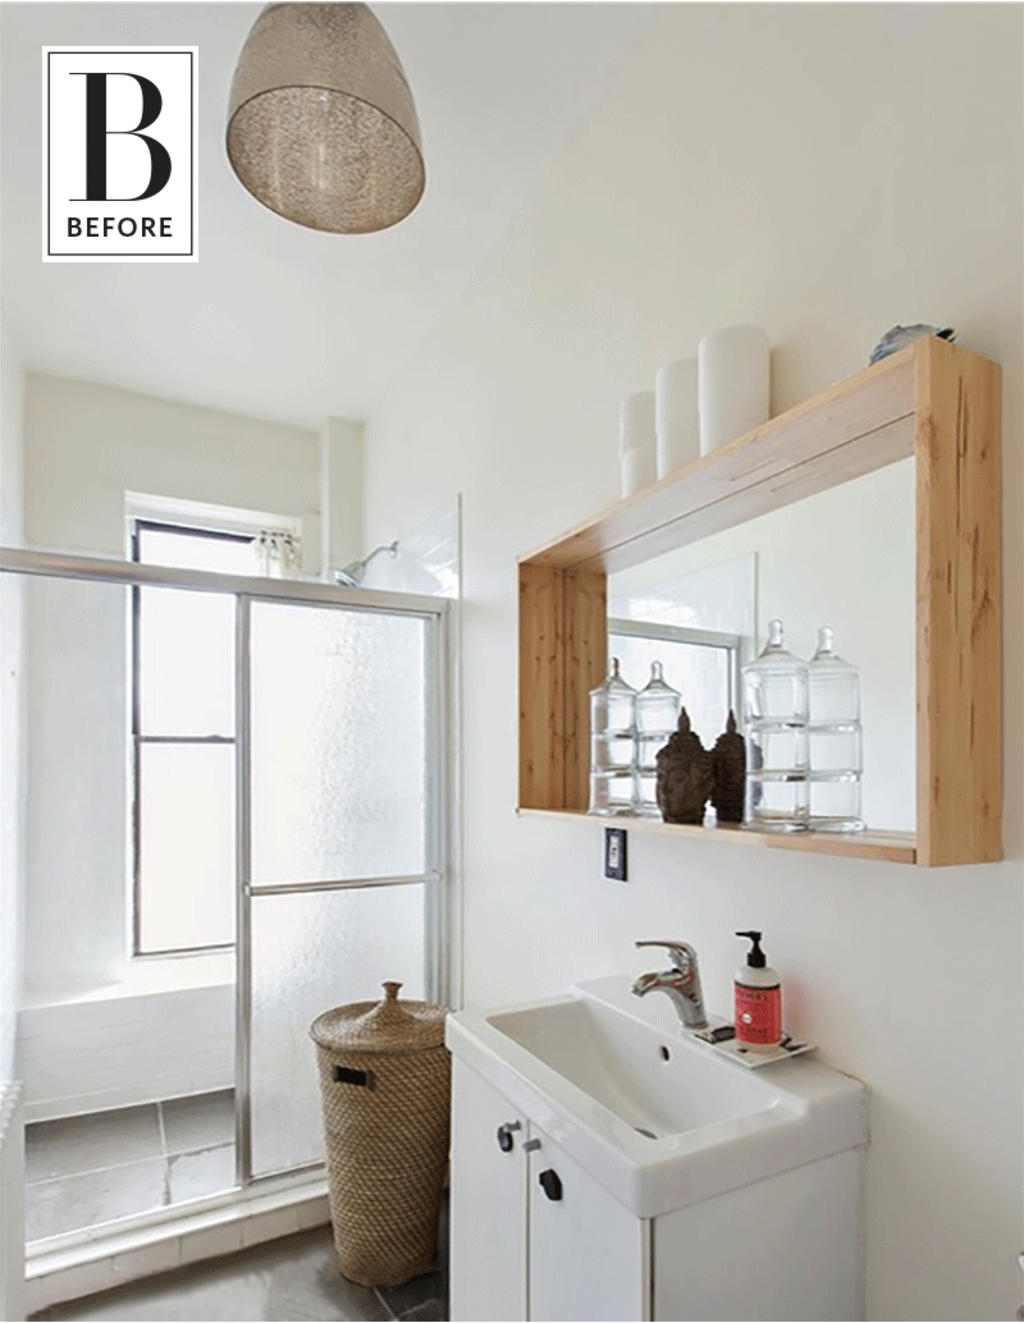 Before & After: This New Bathroom Floor is To Die For